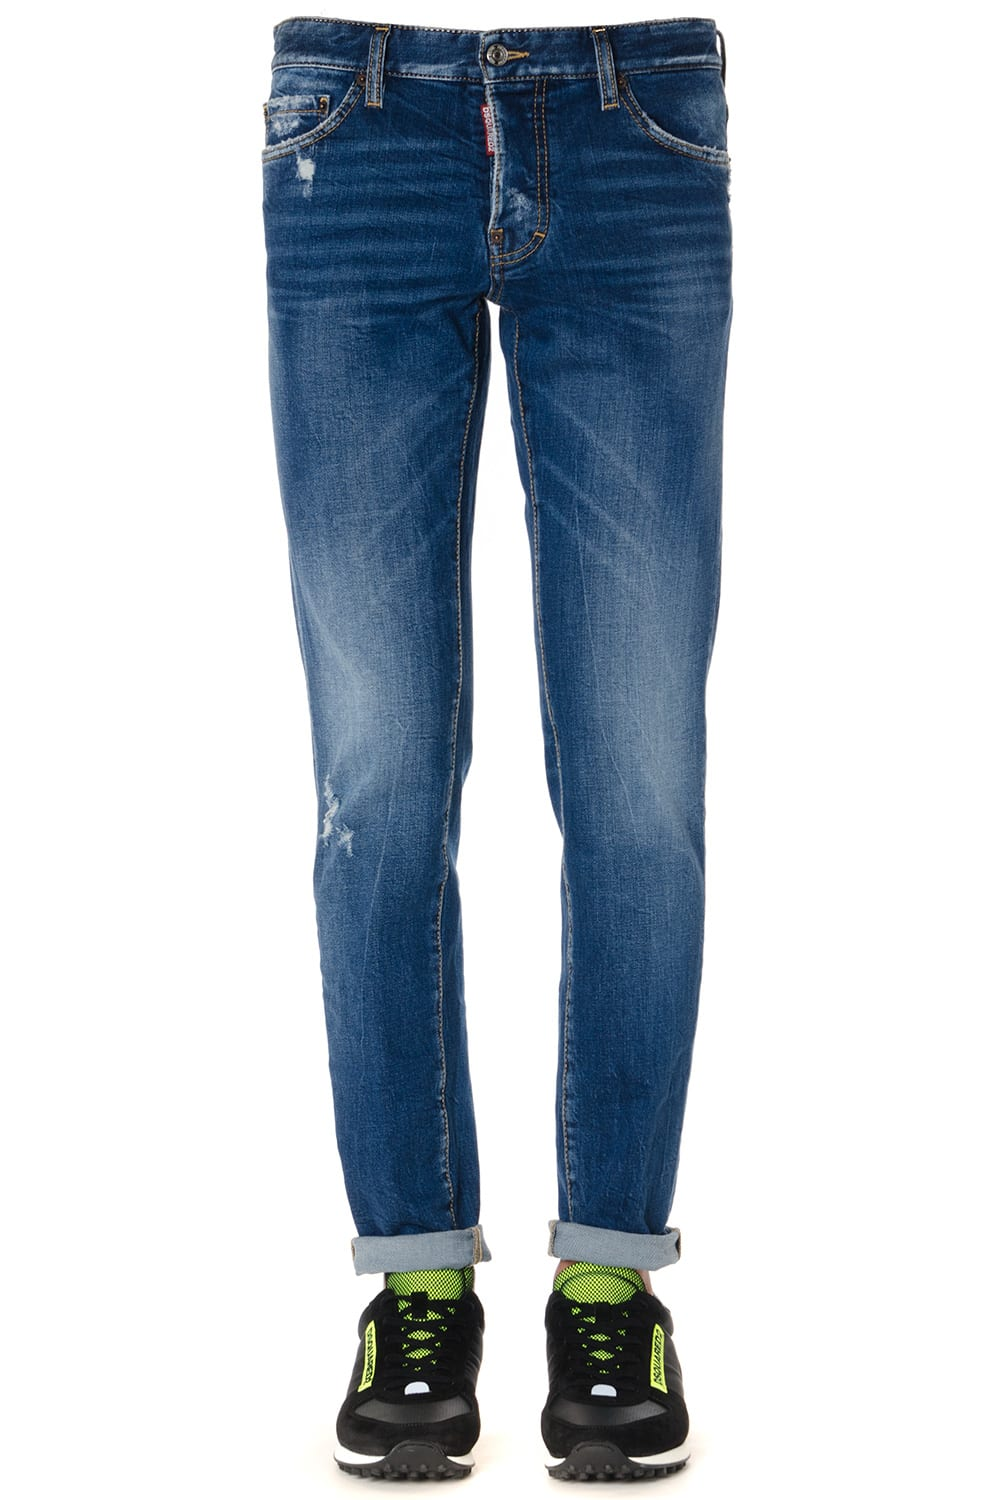 Dsquared2 Stone Washed Denim Cotton Jeans